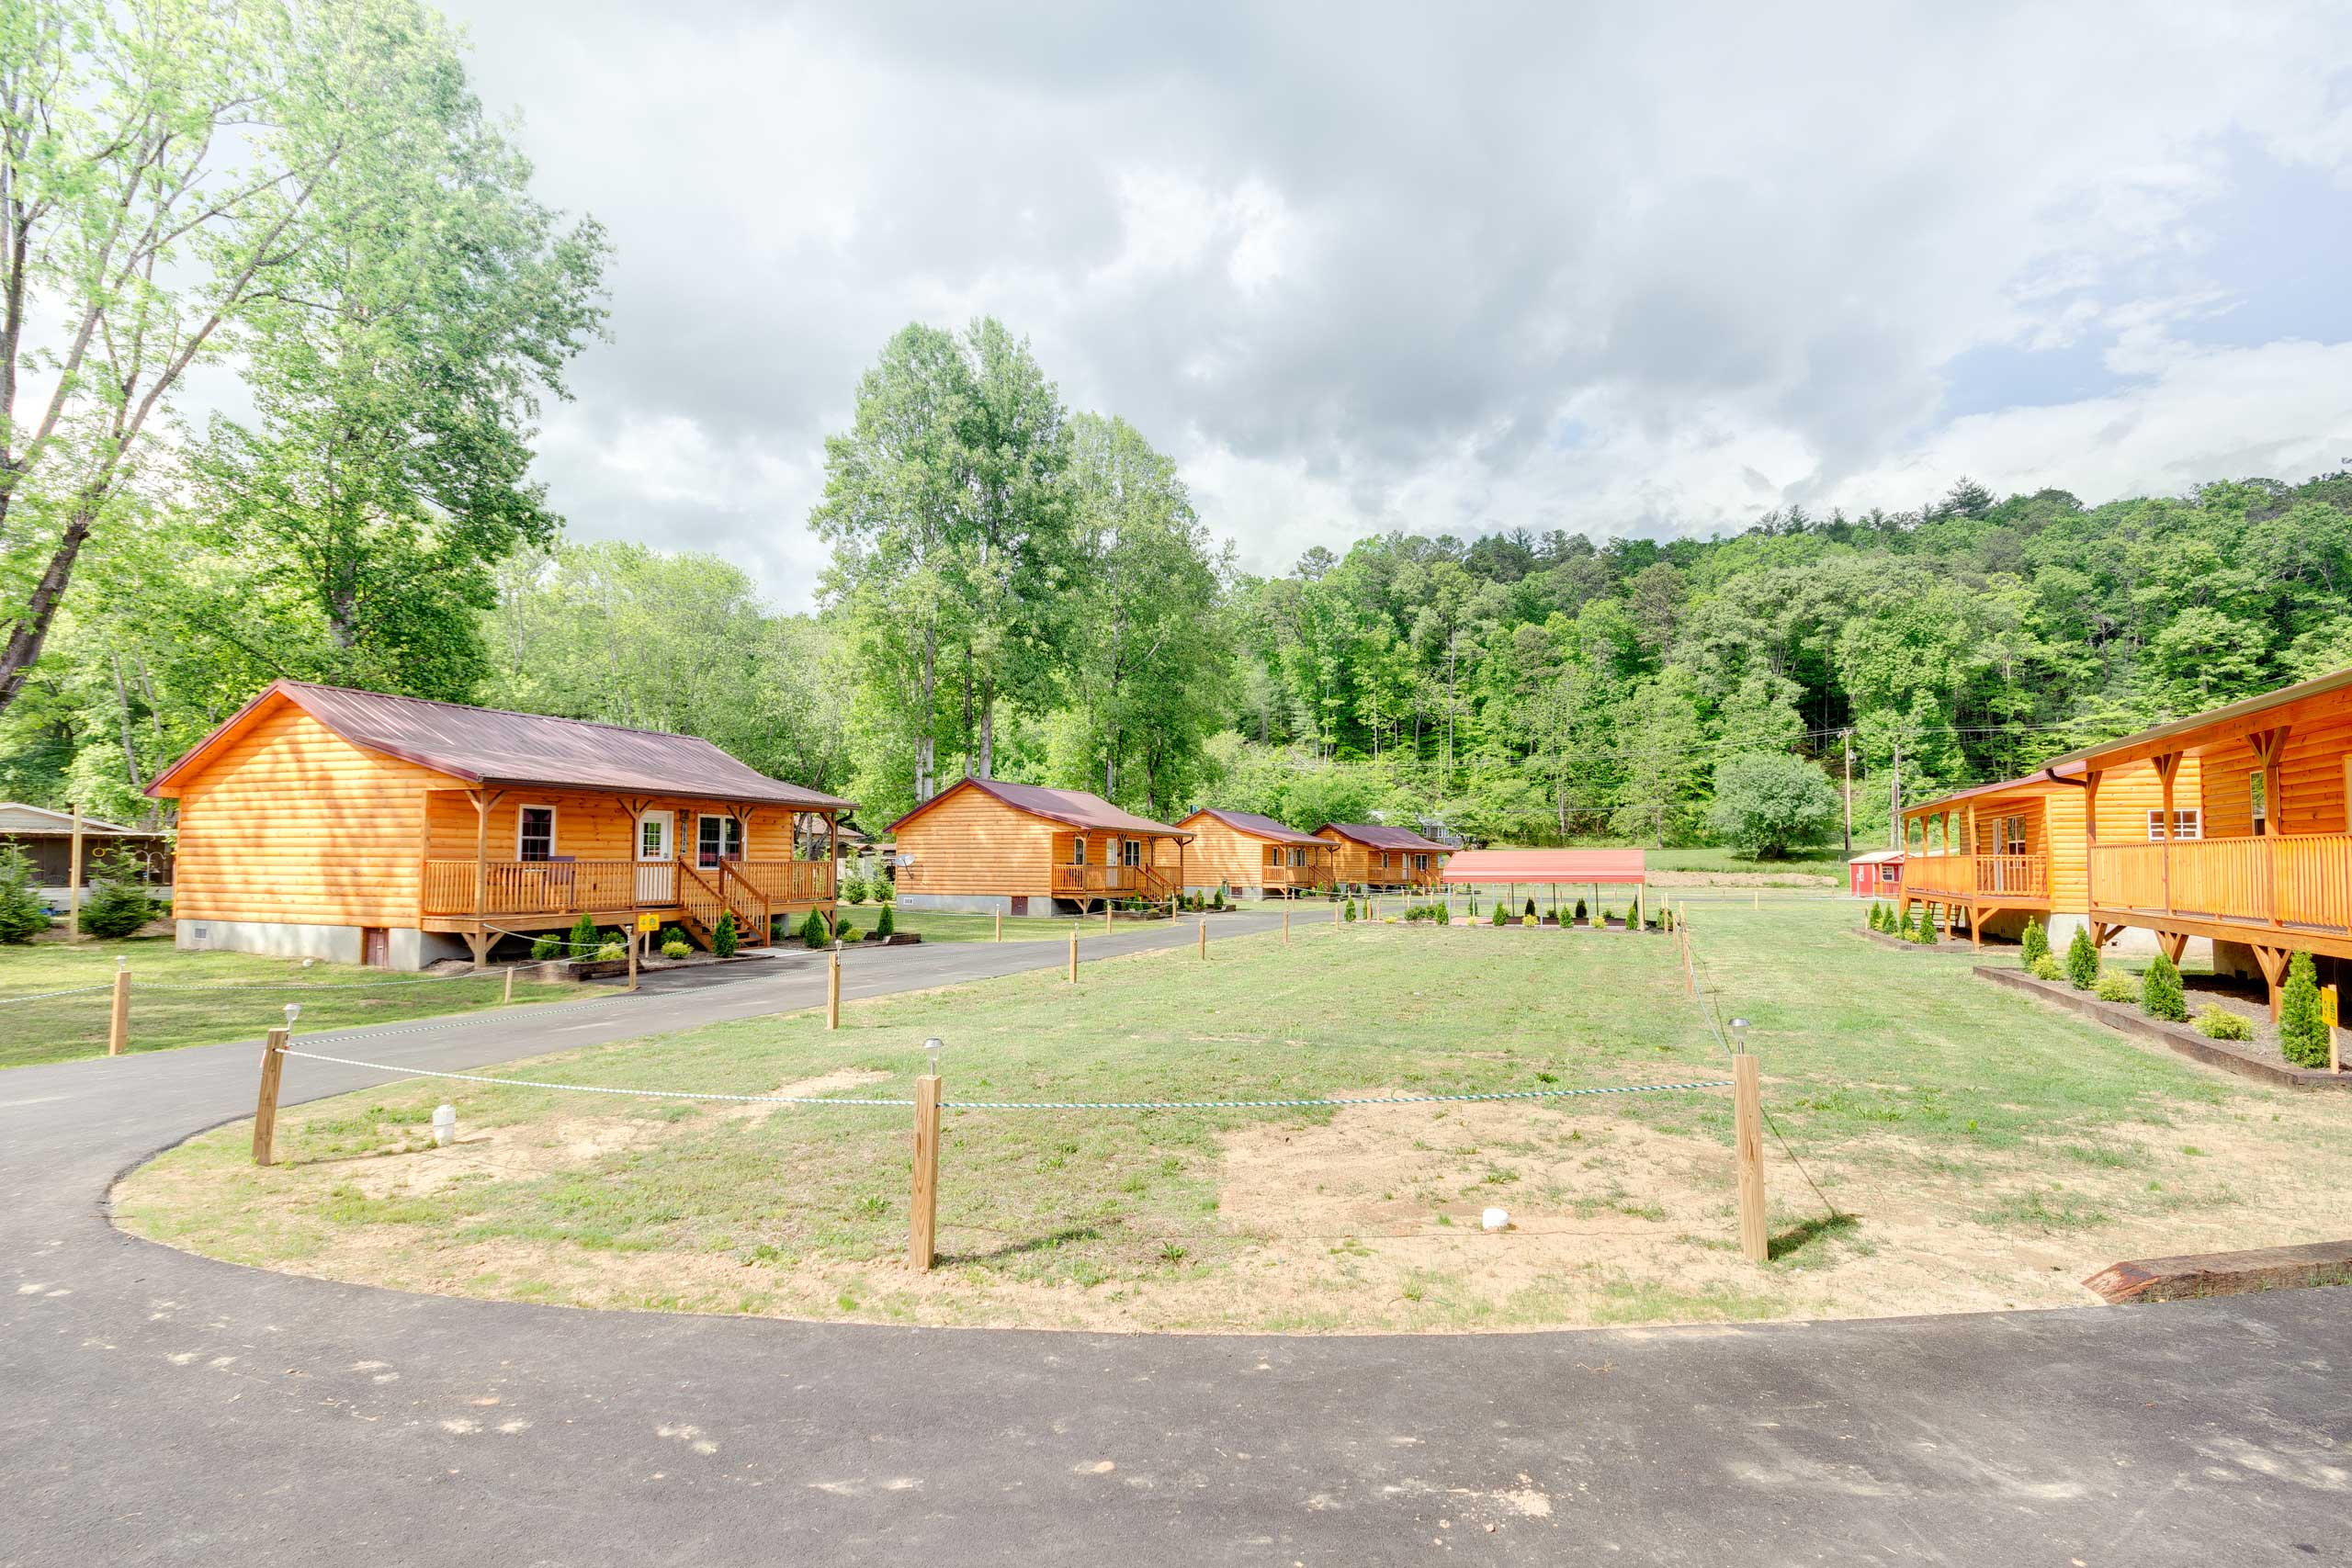 Several other cabins on the property are also available for rent.